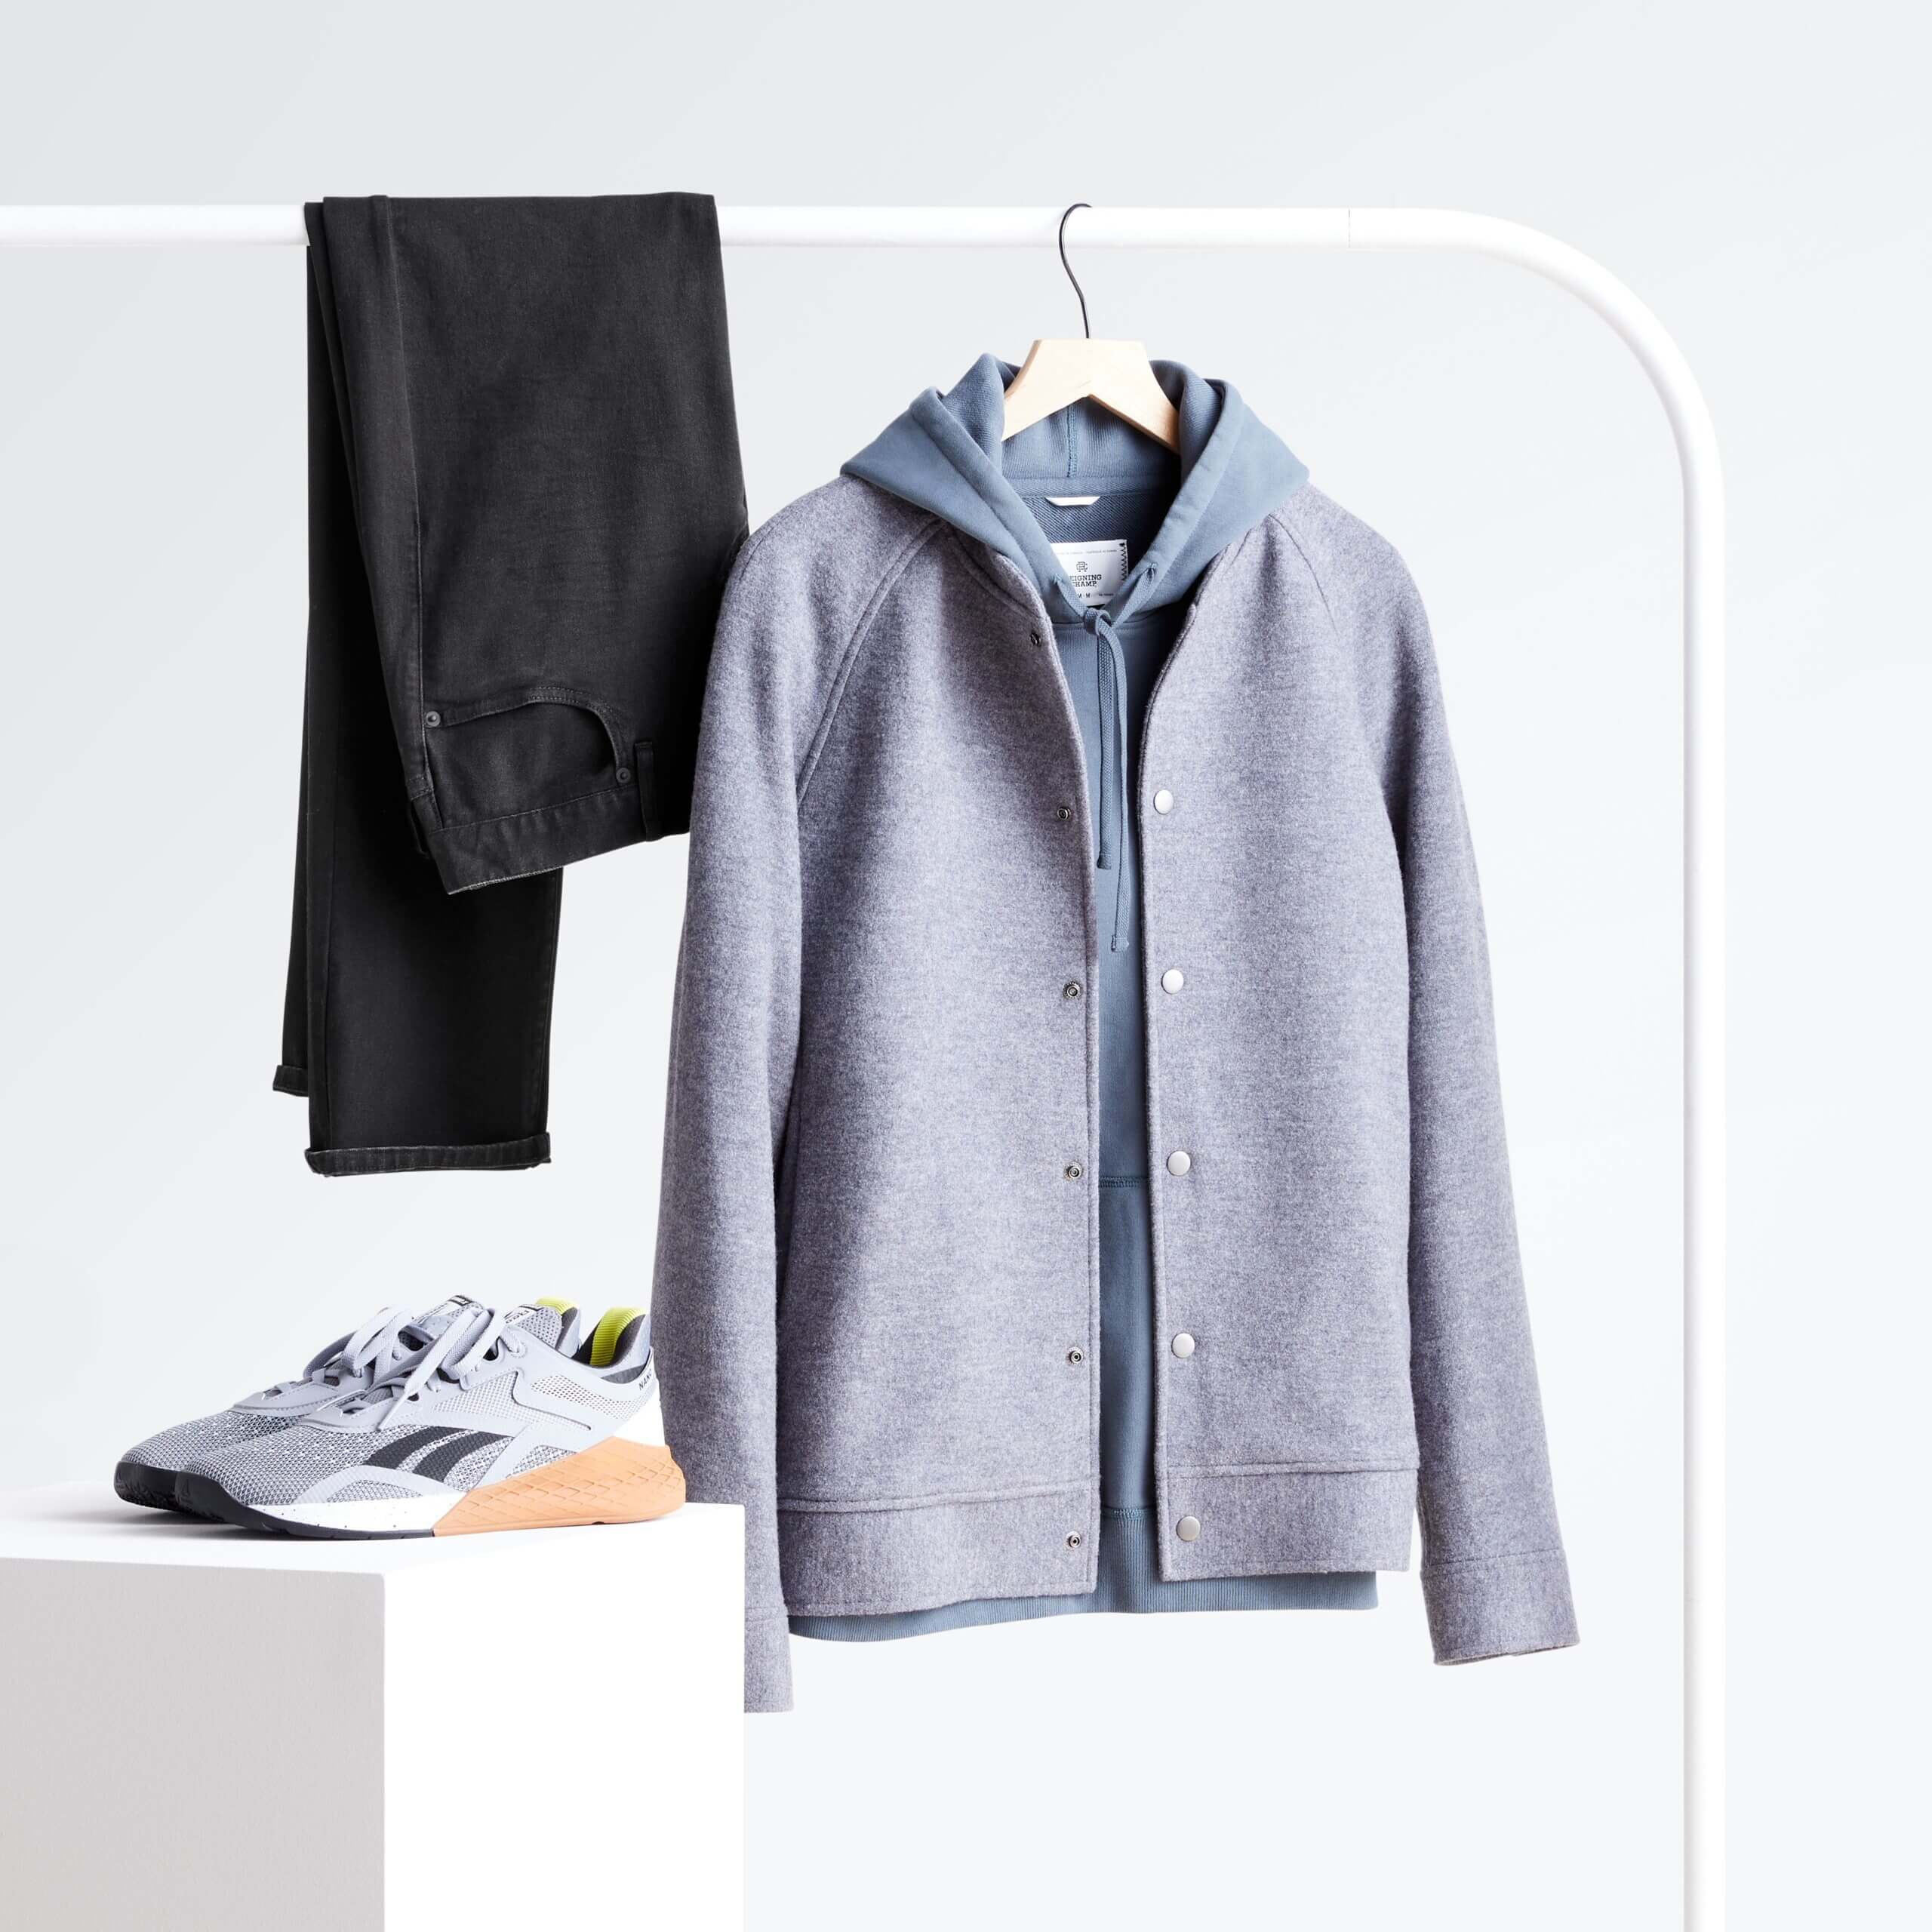 Stitch Fix men's rack image featuring grey wool bomber over blue hoodie and black jeans hanging on white rack next to gray active sneakers on white block.